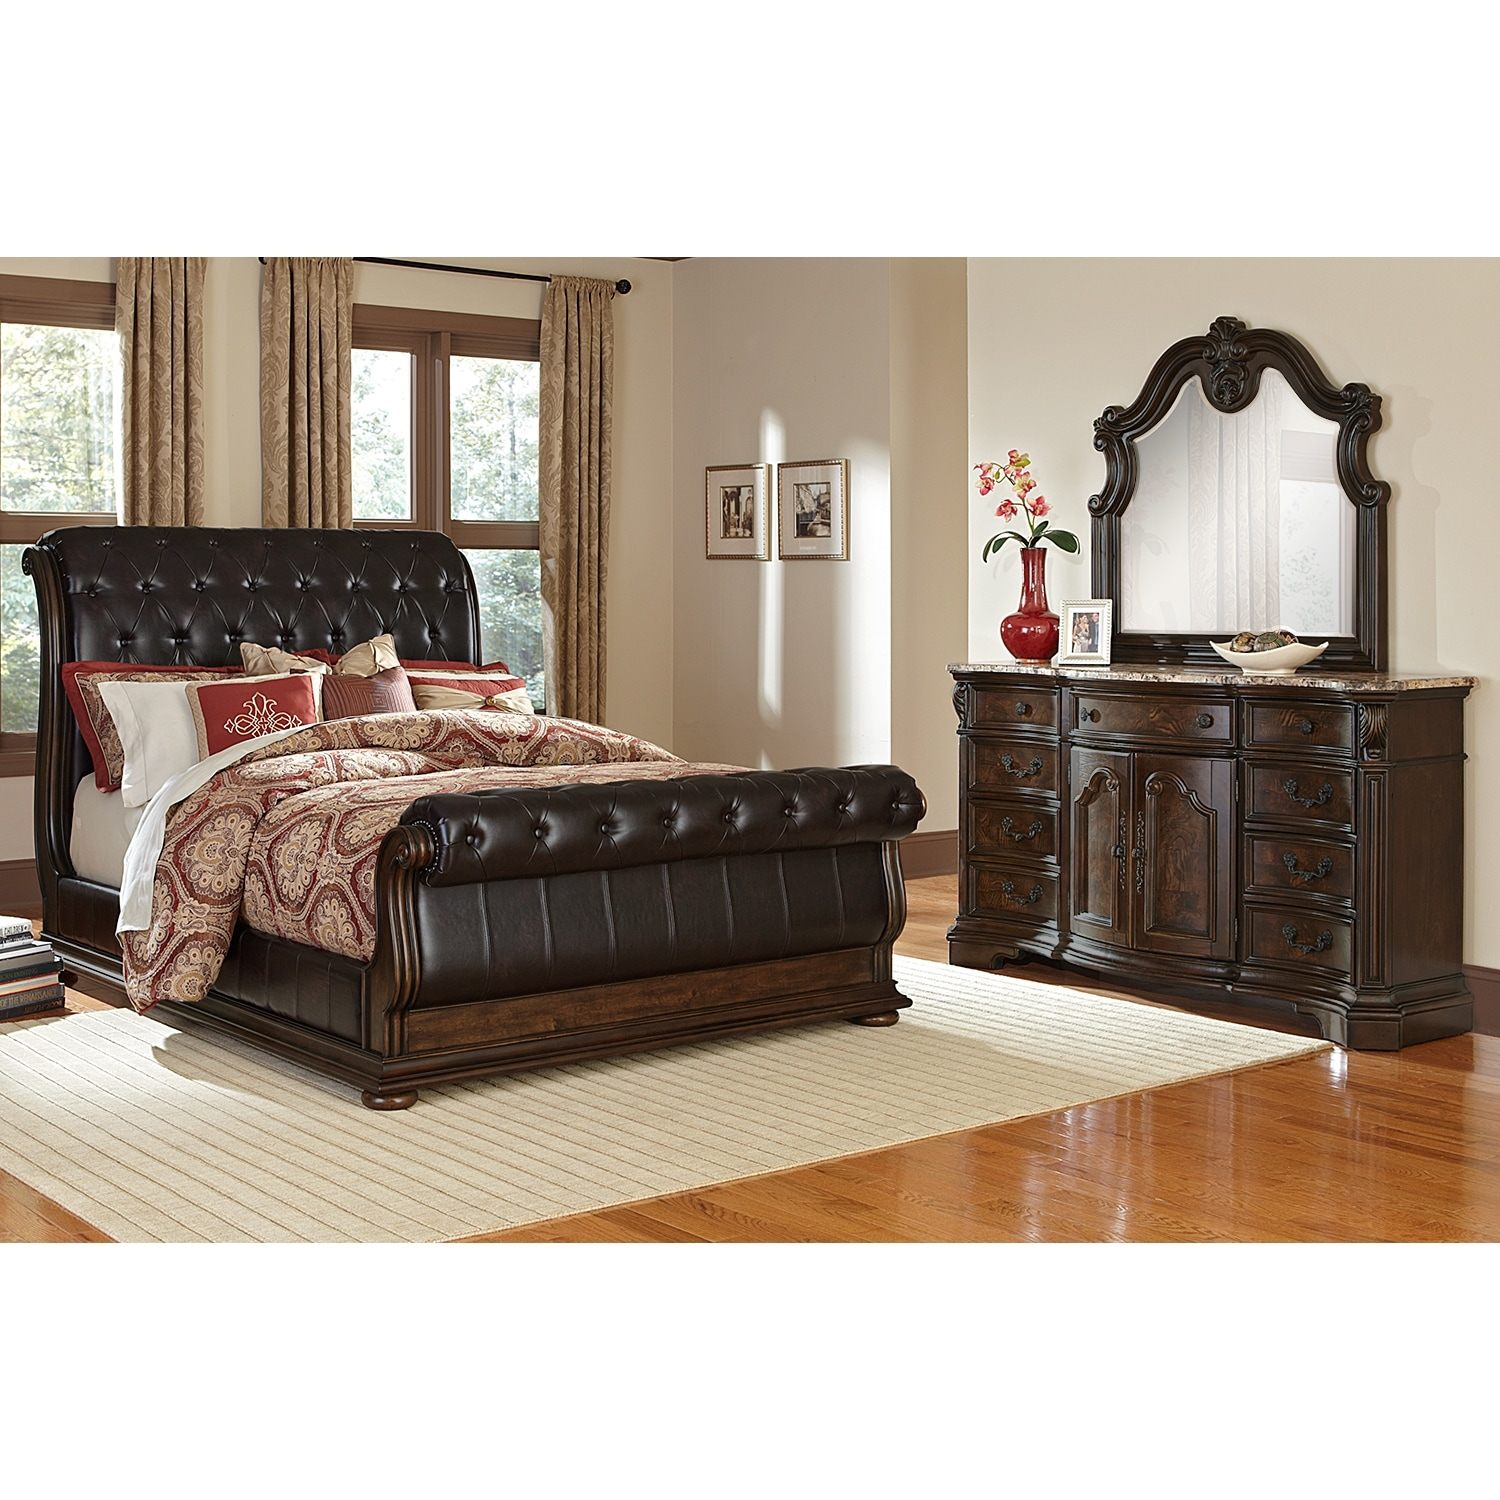 Monticello pecan ii 5 pc king bedroom value city furniture Bedrooms furniture